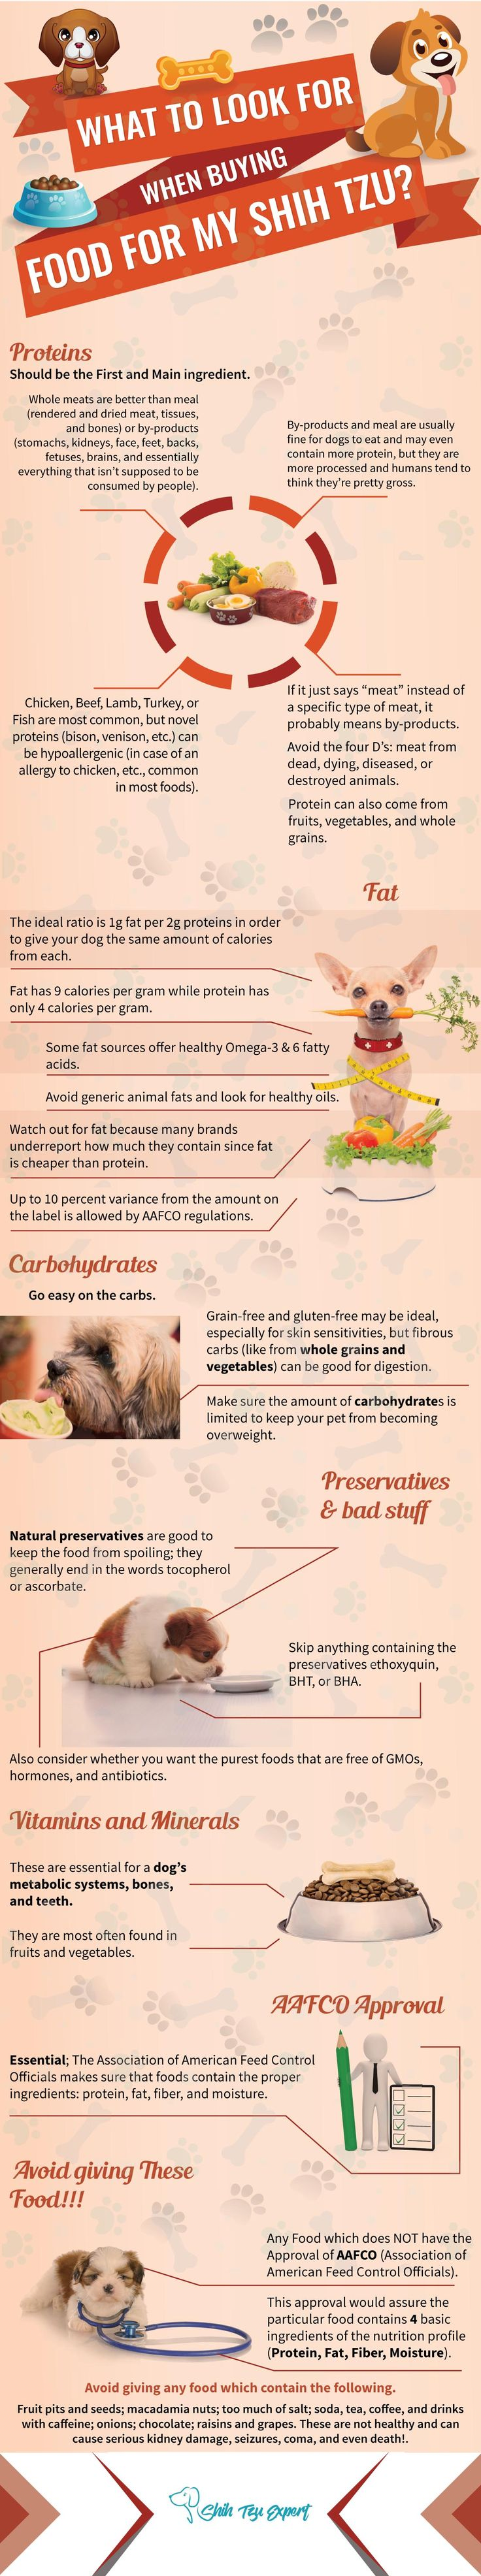 What To Look For When Buying Food For a Shih Tzu